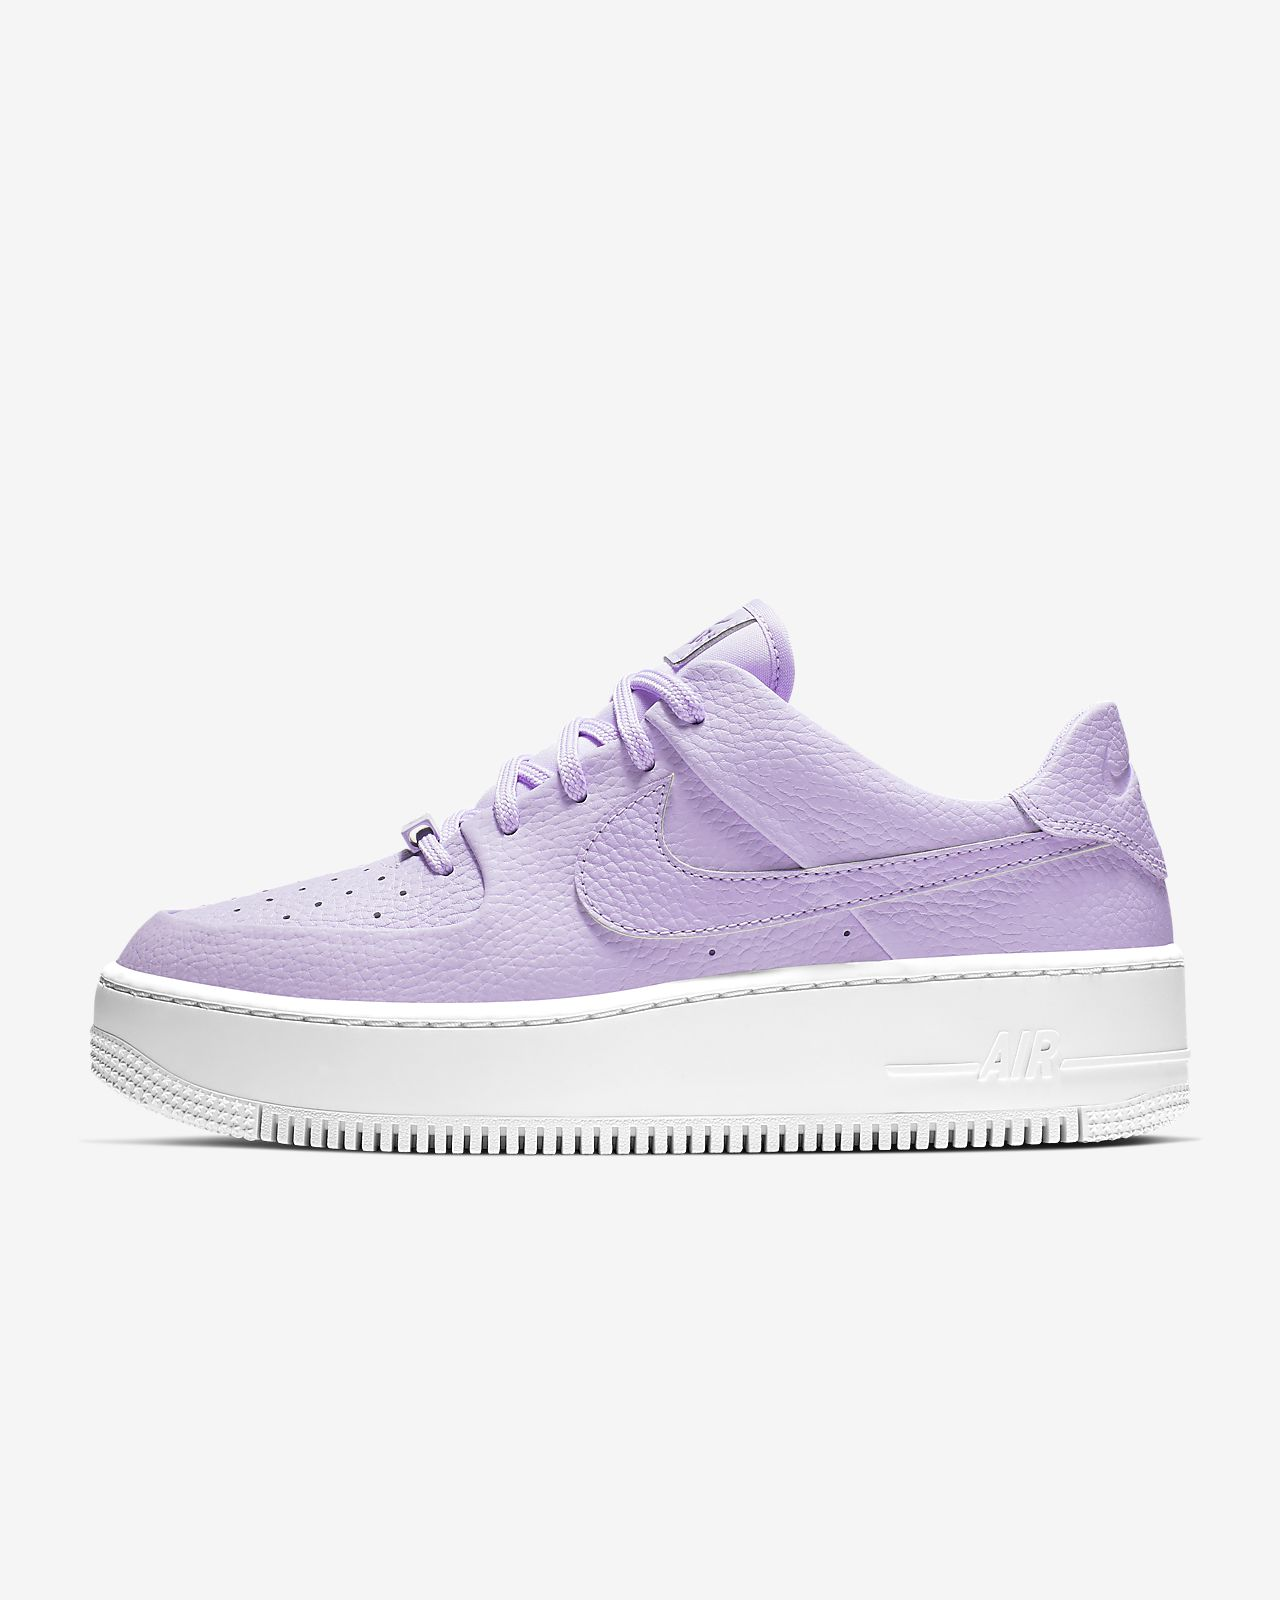 7a40a930f42e Nike Air Force 1 Sage Low Women s Shoe. Nike.com CA